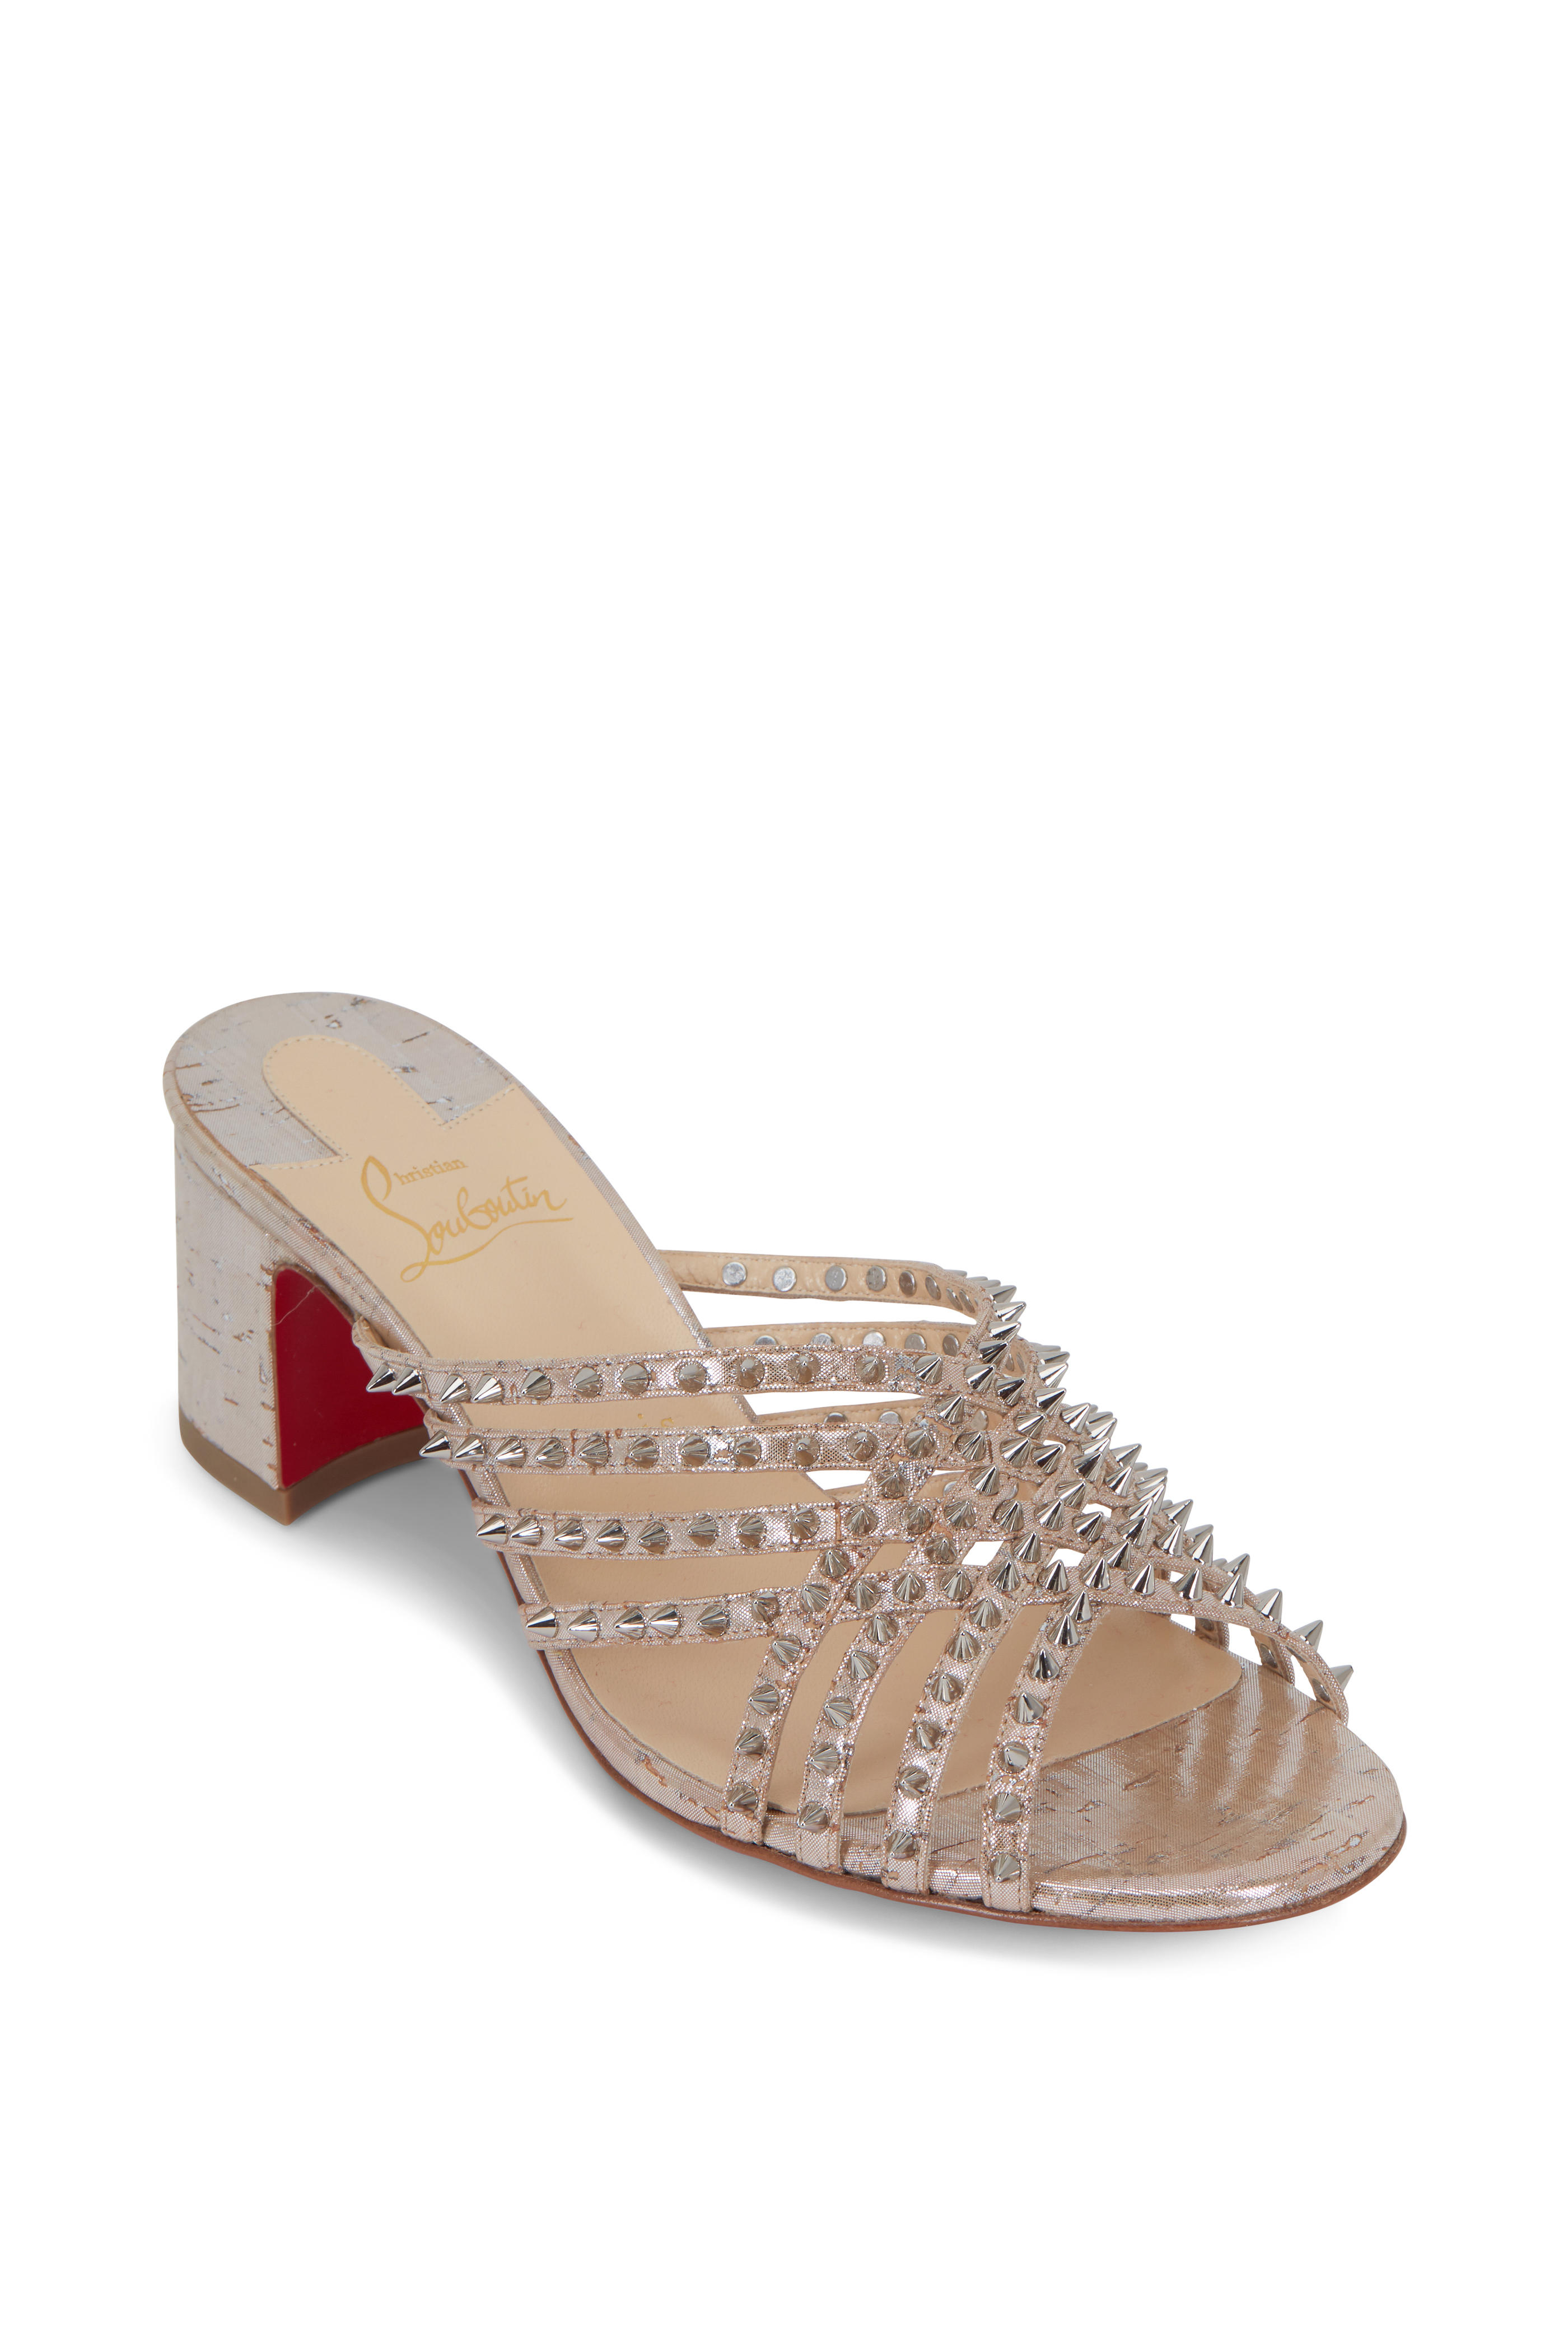 reputable site 8db74 8391f Christian Louboutin - Martha Silver Laminated Cork Spike ...